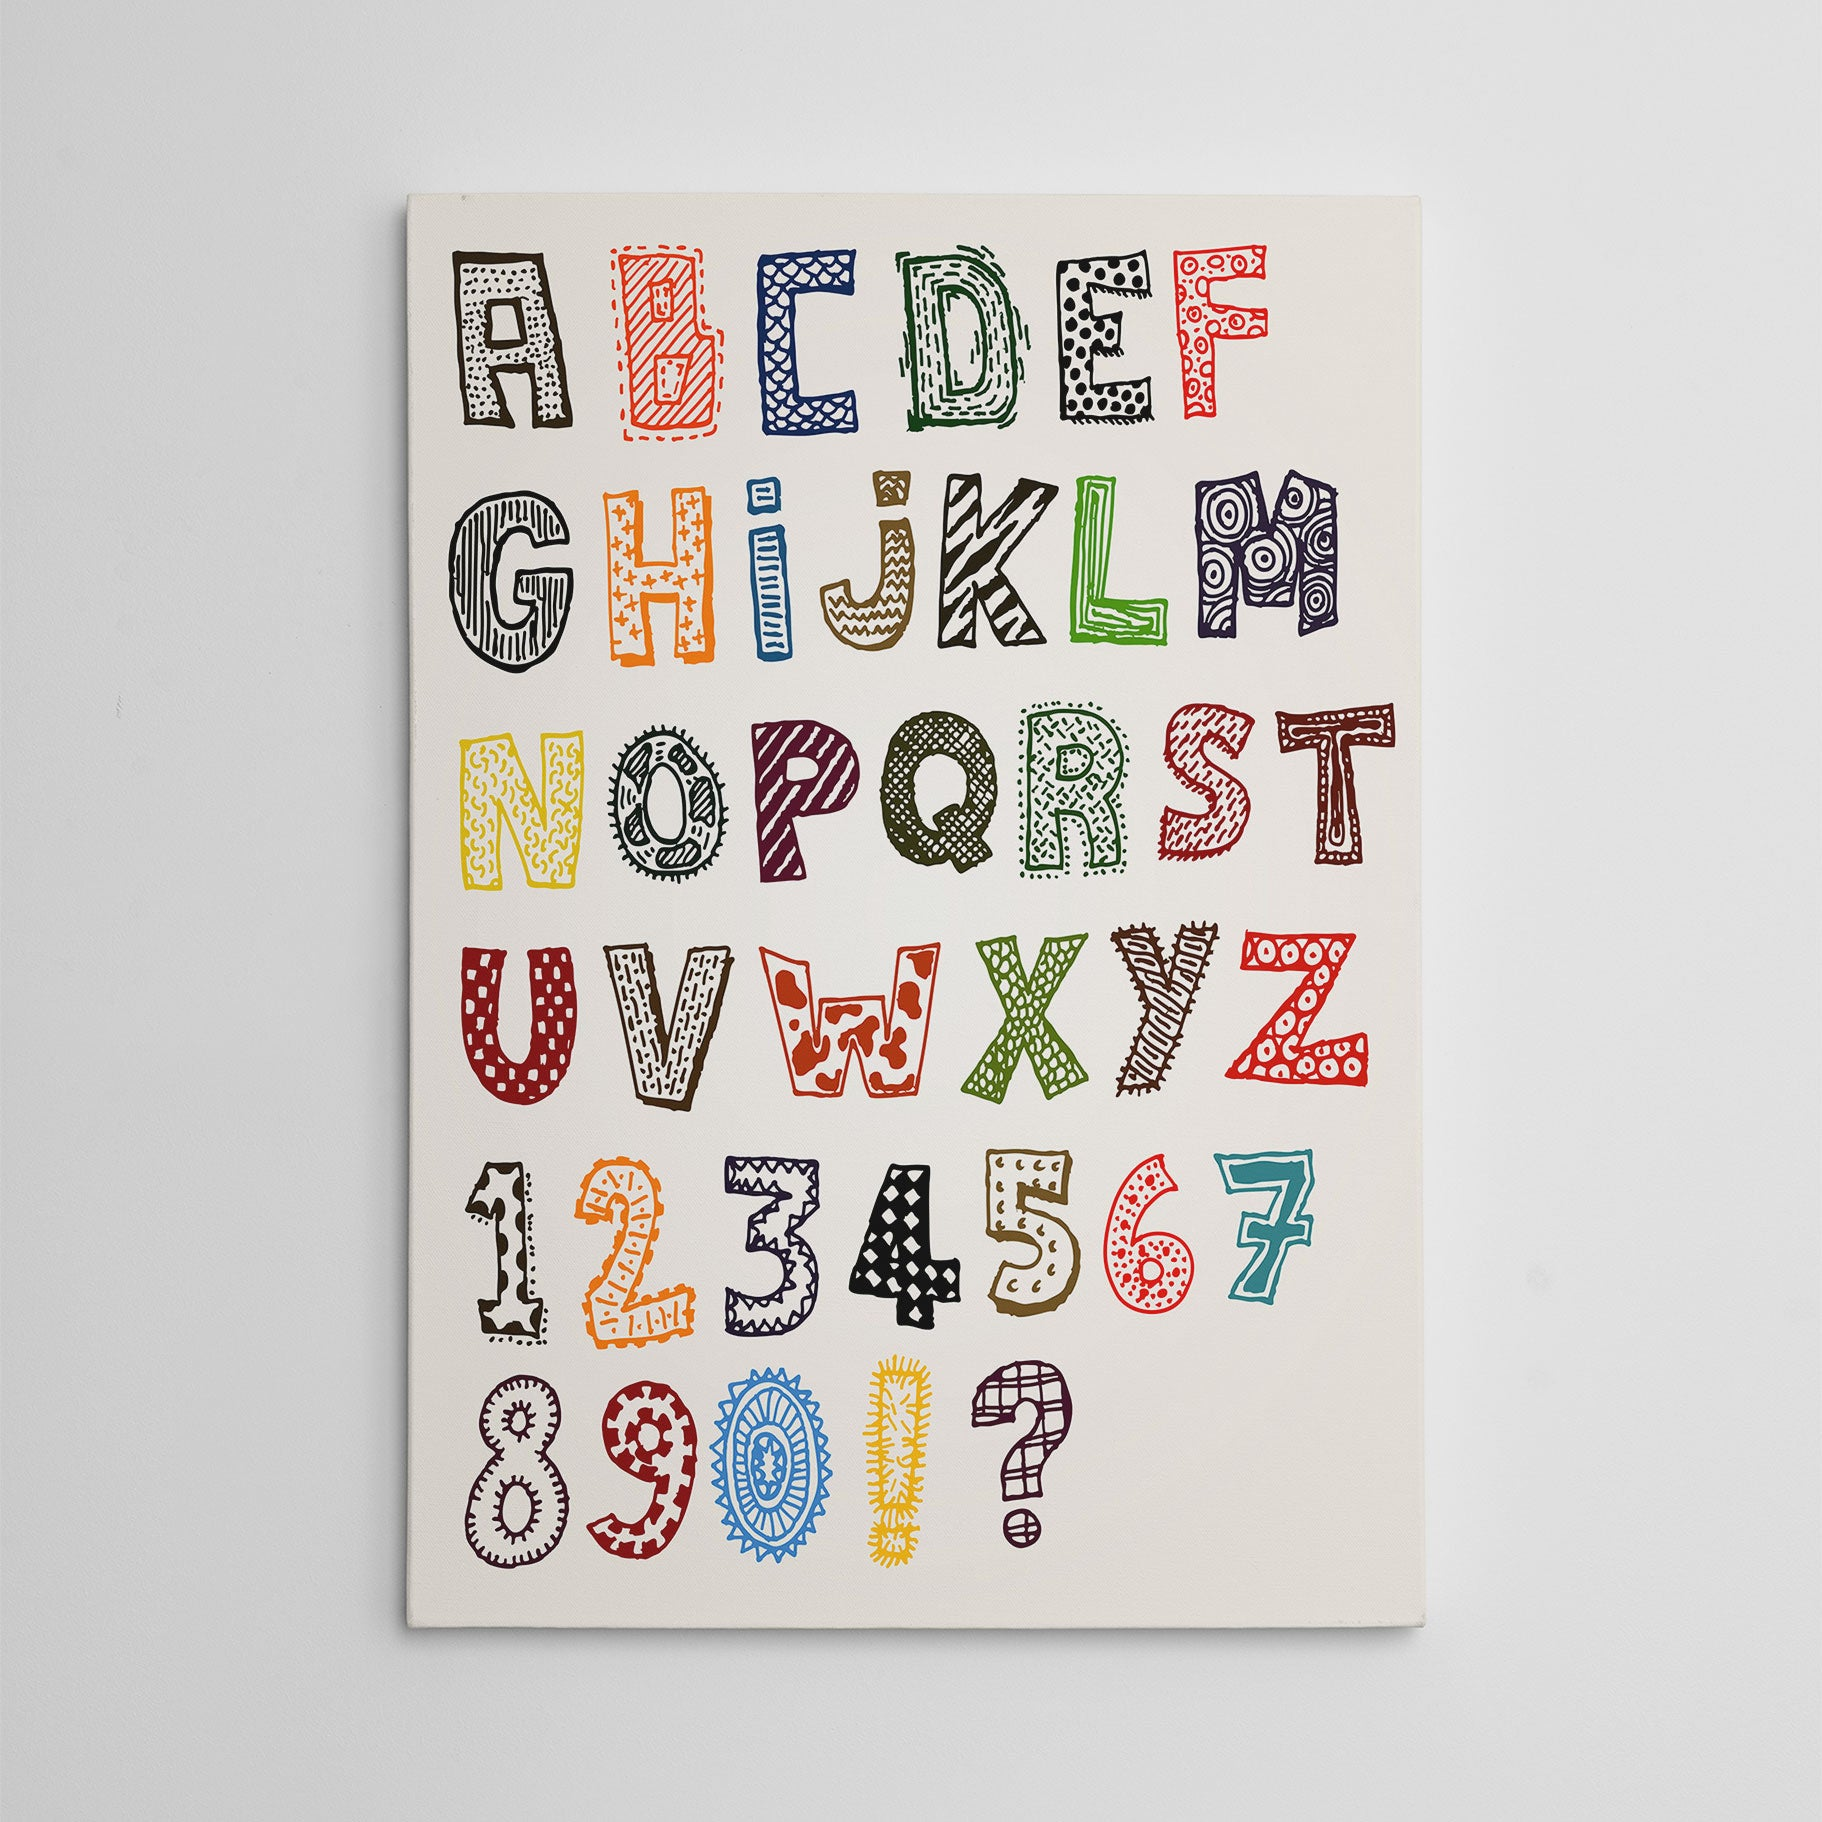 Educational canvas print with patterned letters and numbers.